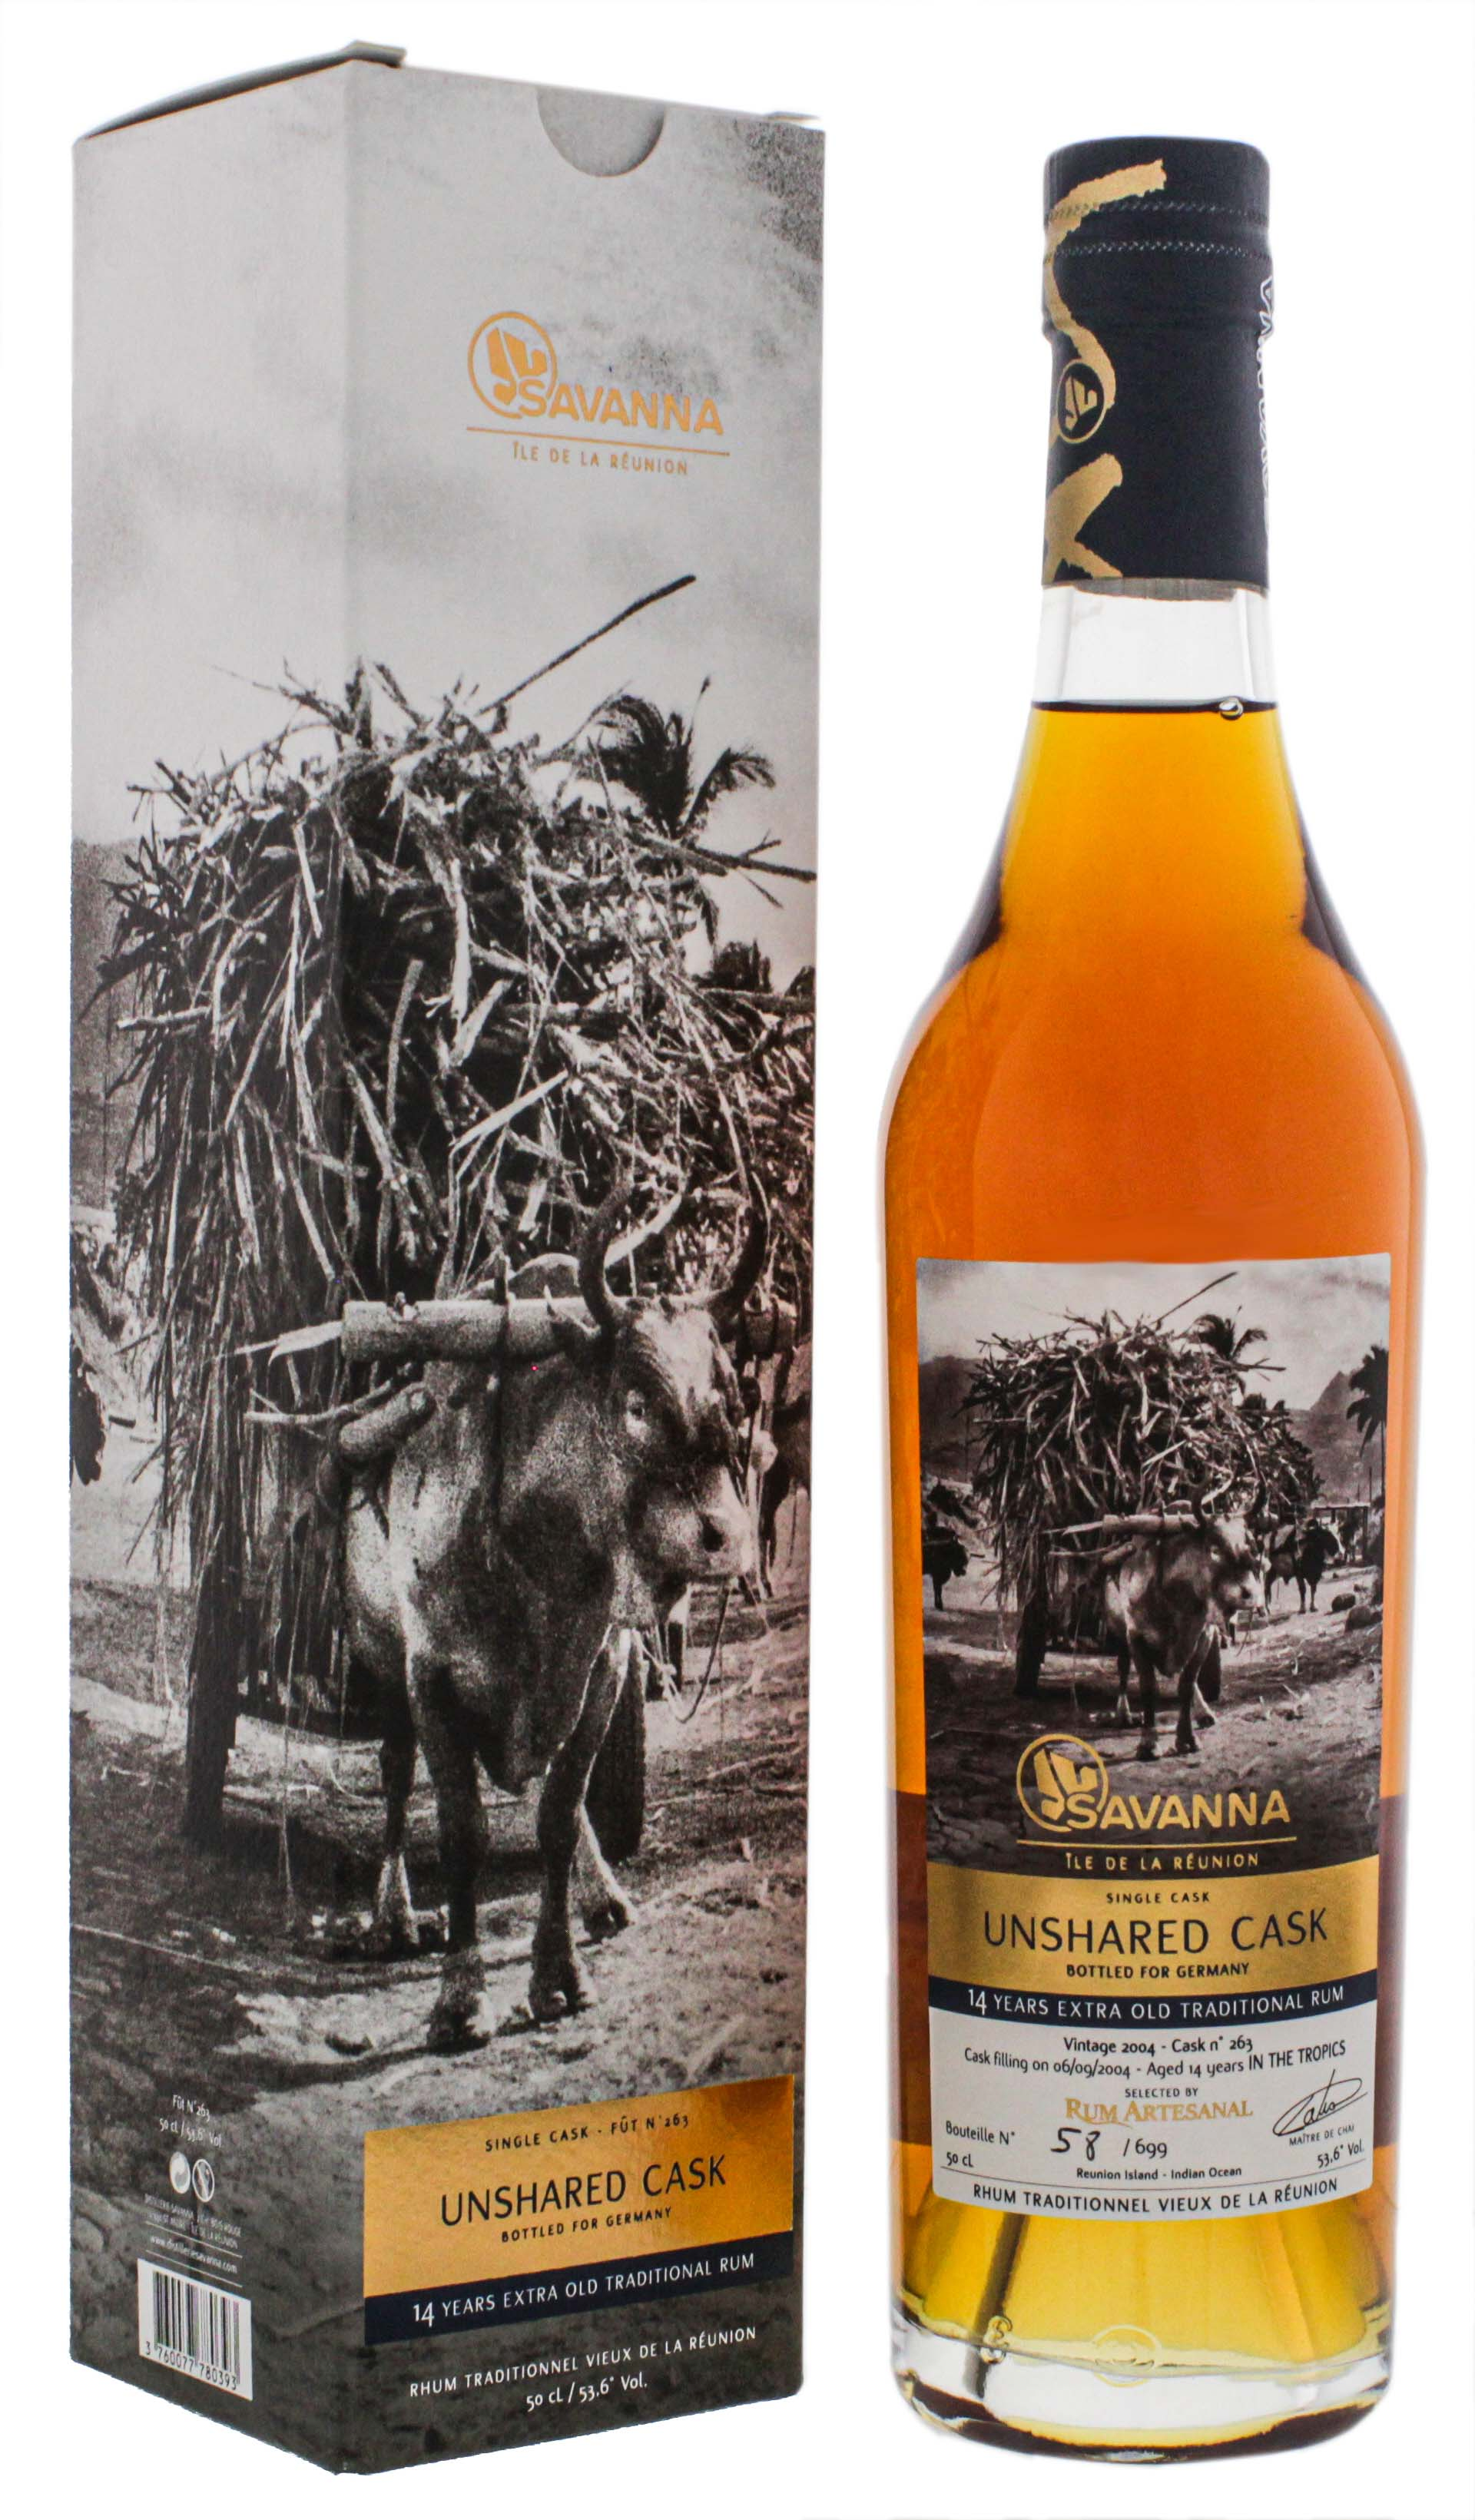 Savanna Rhum Vieux Extra Old Traditionnel Unshared Cask No. 263 Single Cask 14 Jahre 0,5L 53,6%